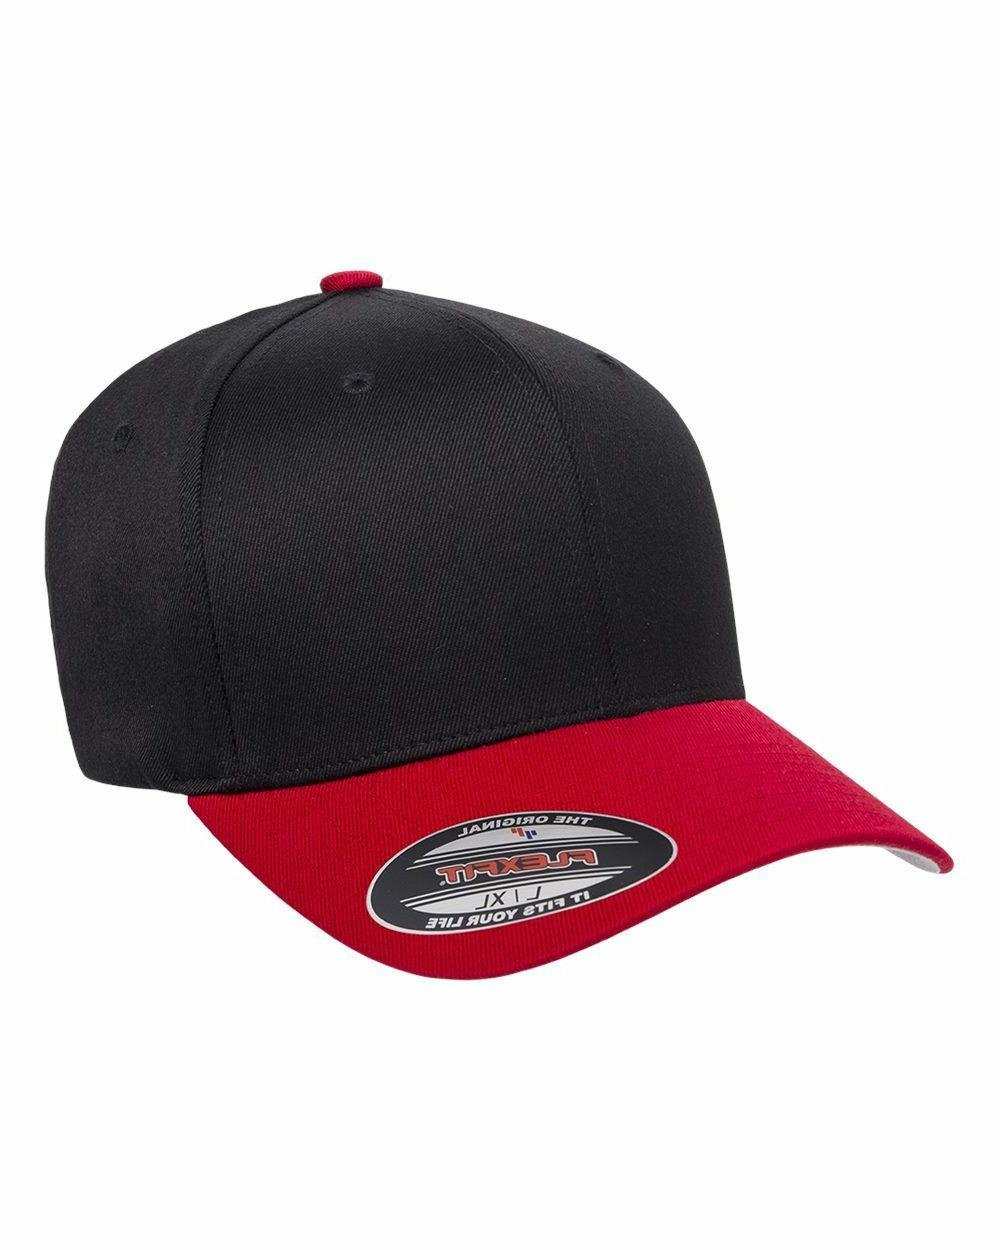 FLEXFIT Structured Twill Hat FITTED 2XL 6277